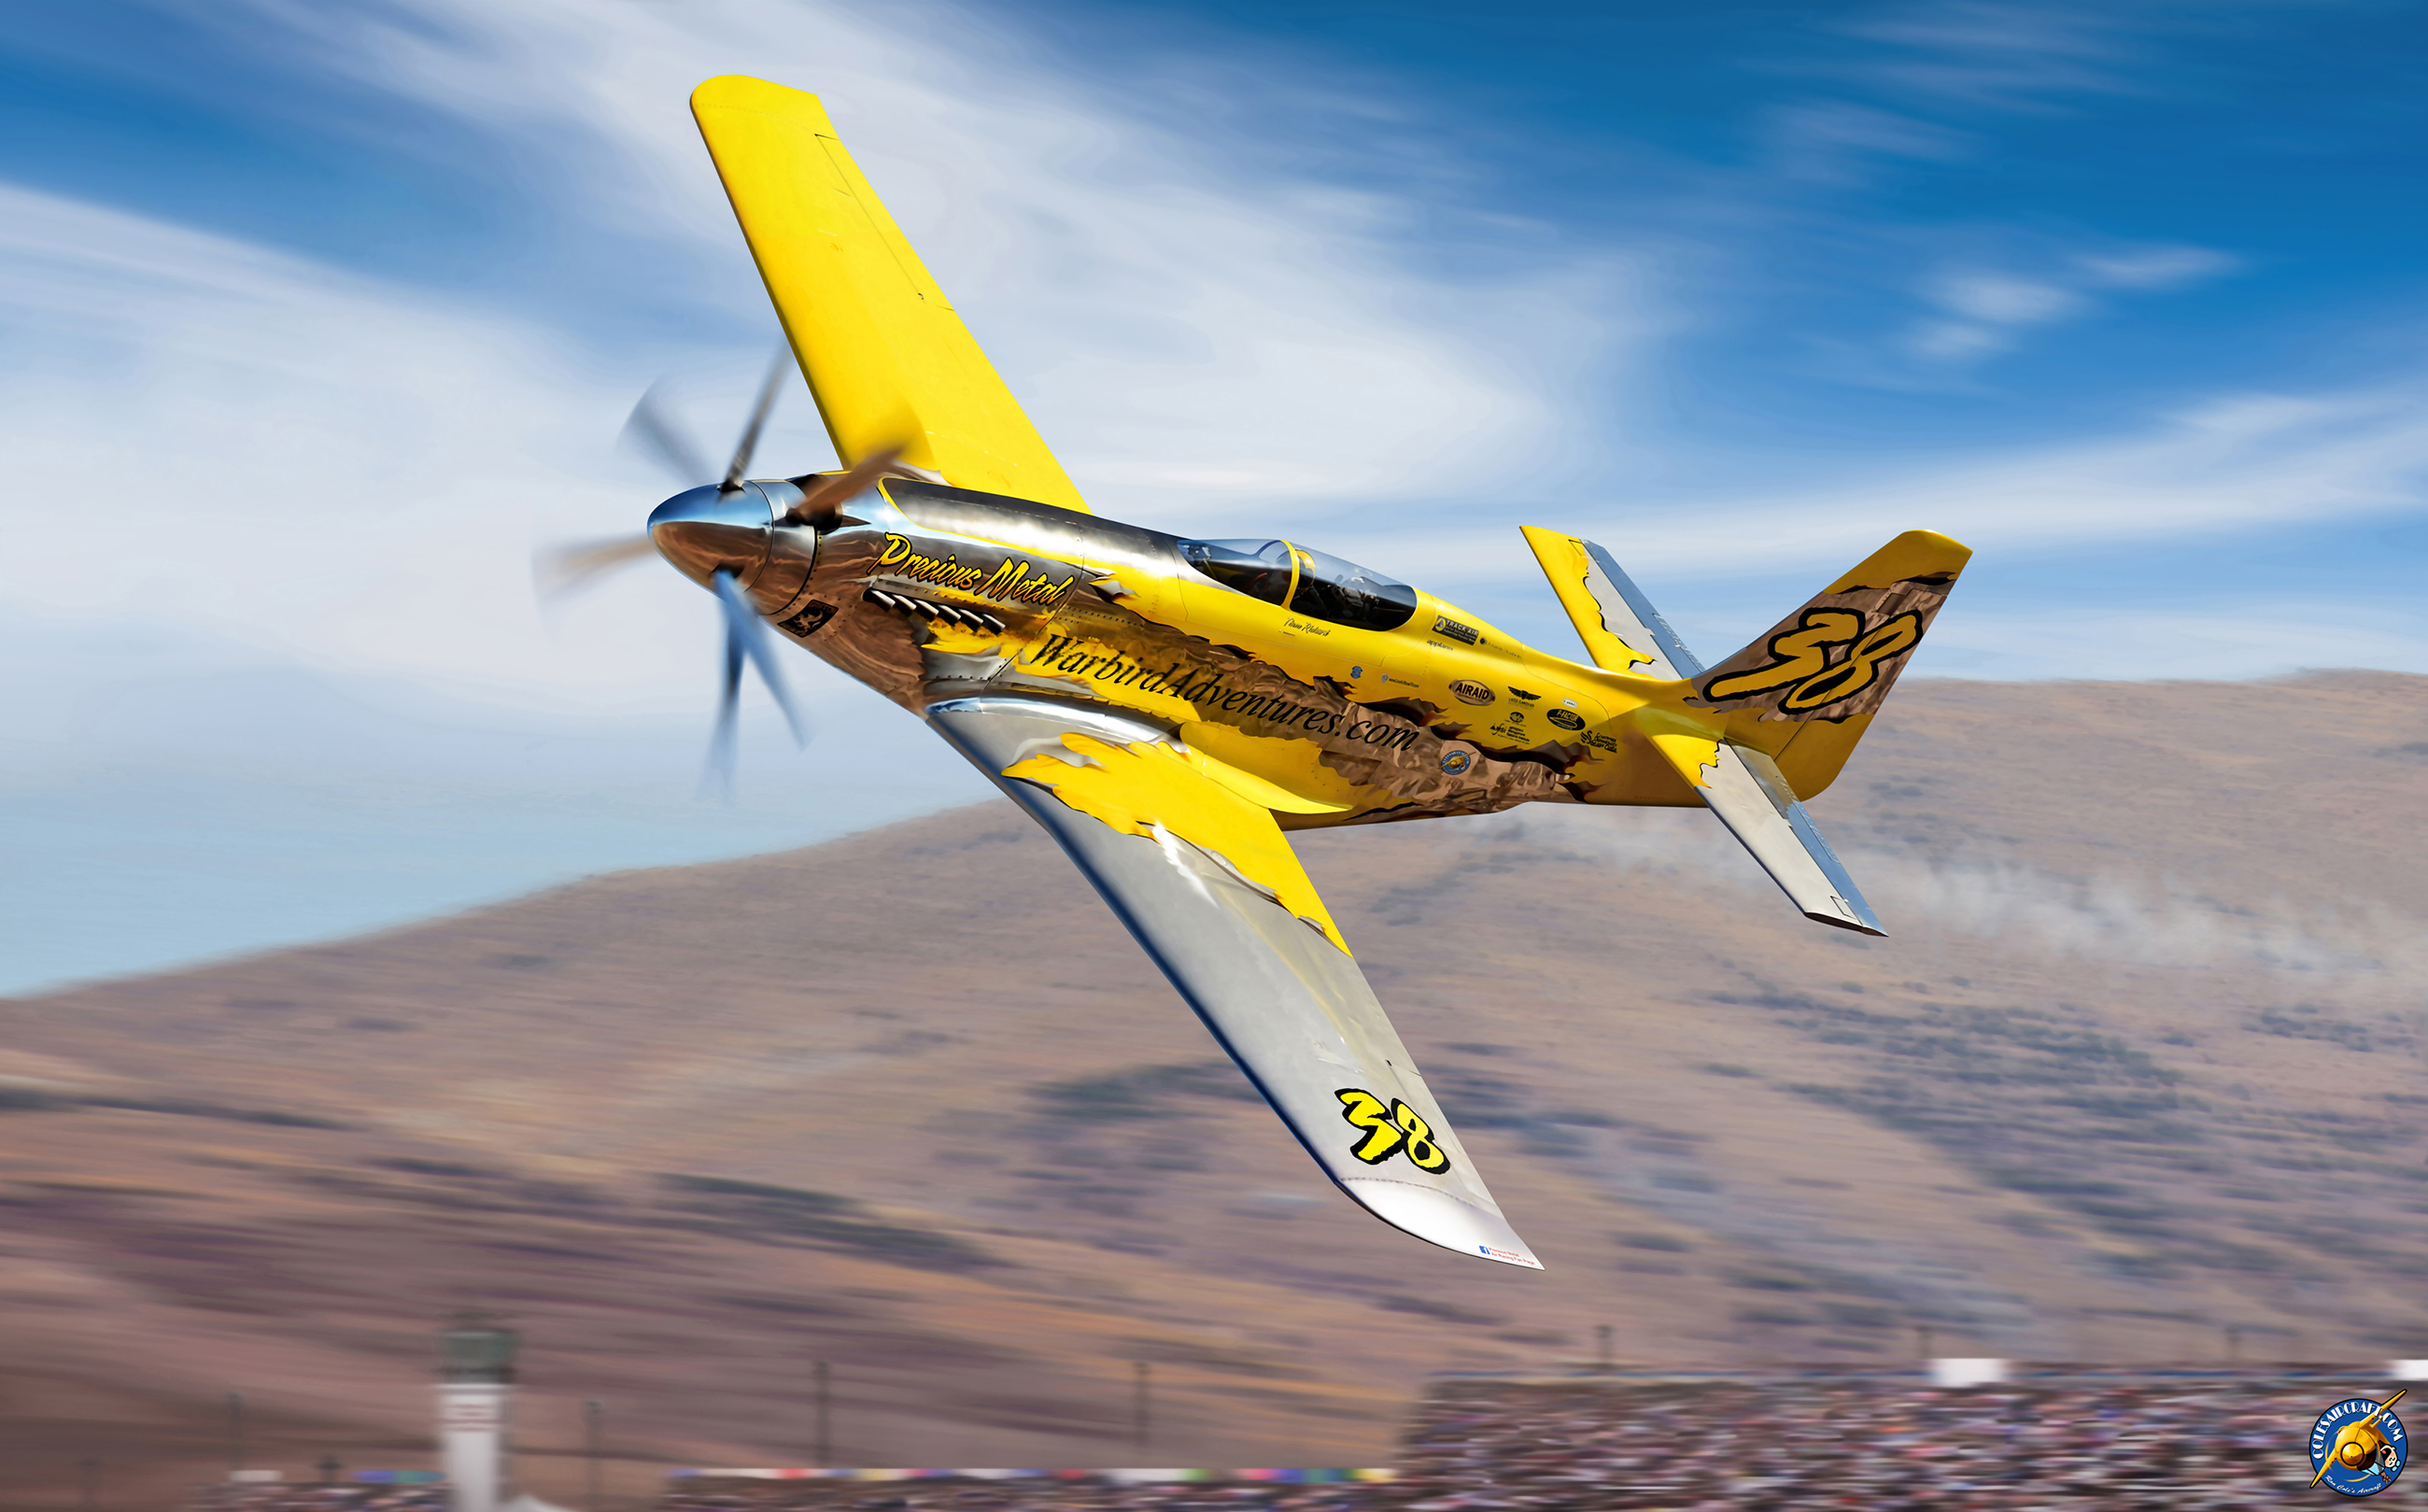 Aviation artist Ron Cole's commissioned rendering of Precious Metal screaming around the Reno pylons. (Image by Ron Cole)